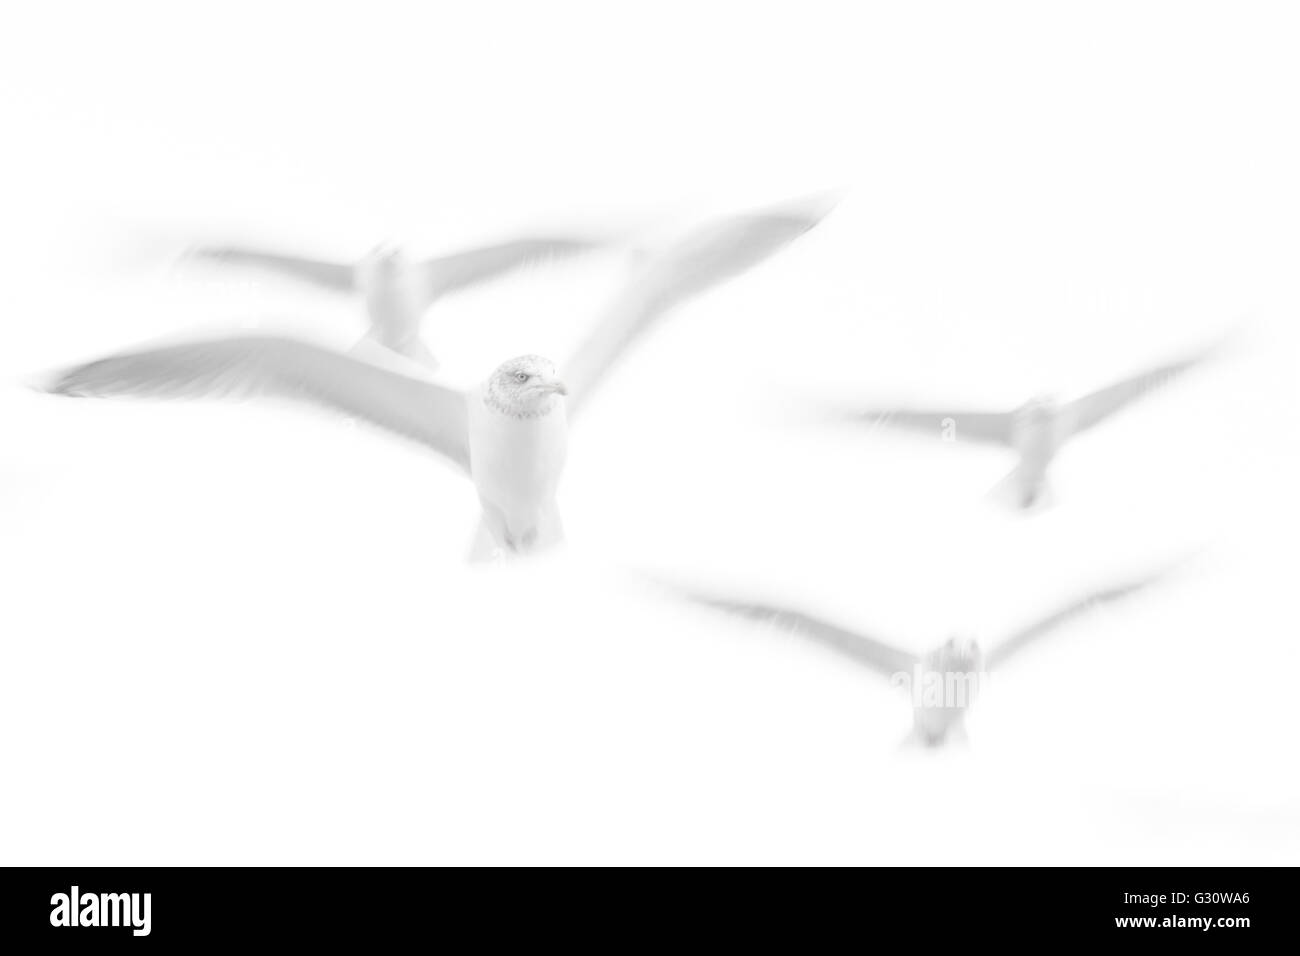 Herring gull (Larus argentatus) flying against sky in abstract image with motion blur, Norway. - Stock Image